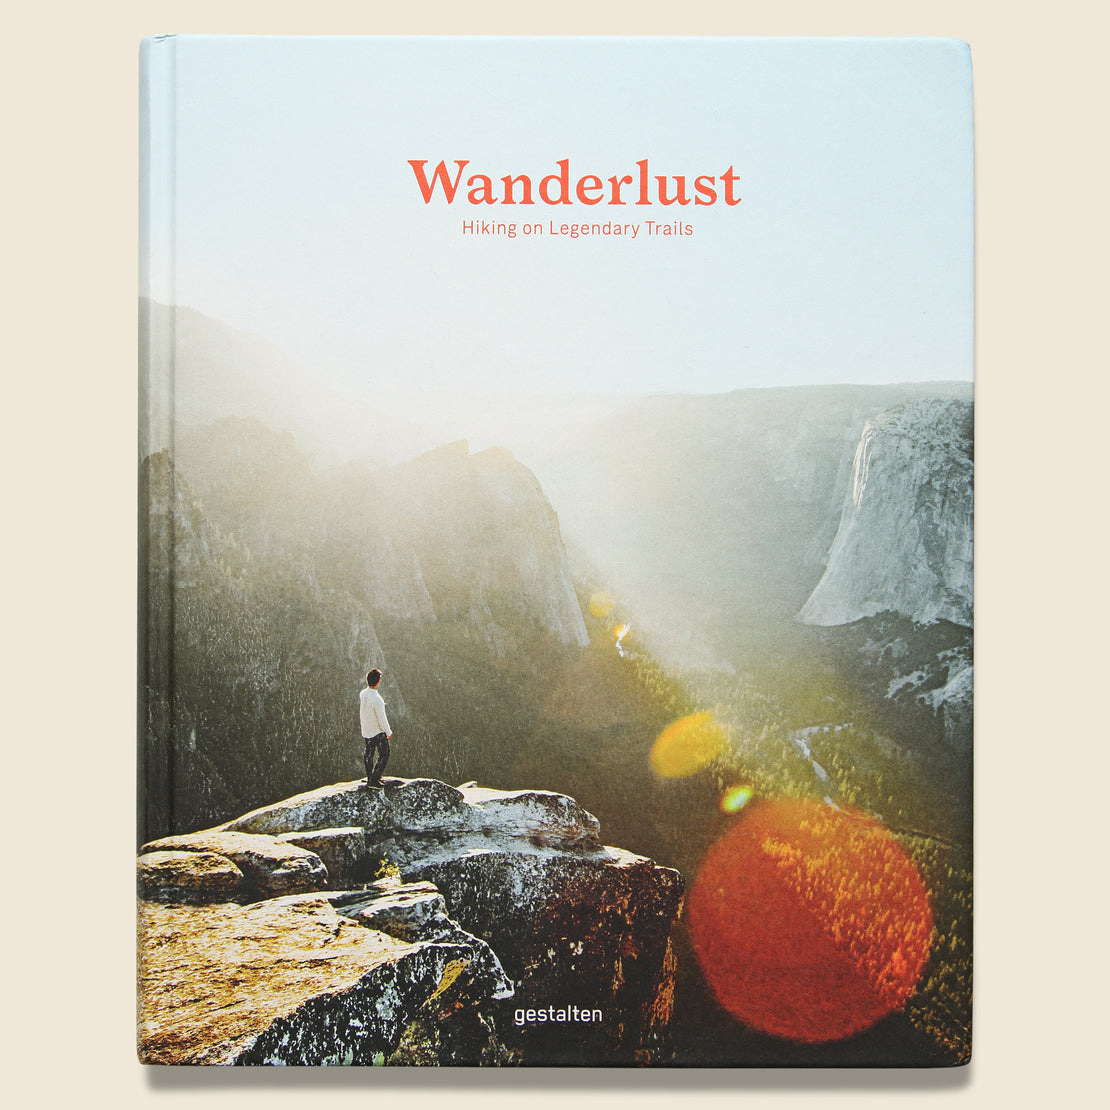 Bookstore Wanderlust: Hiking on Legendary Trails